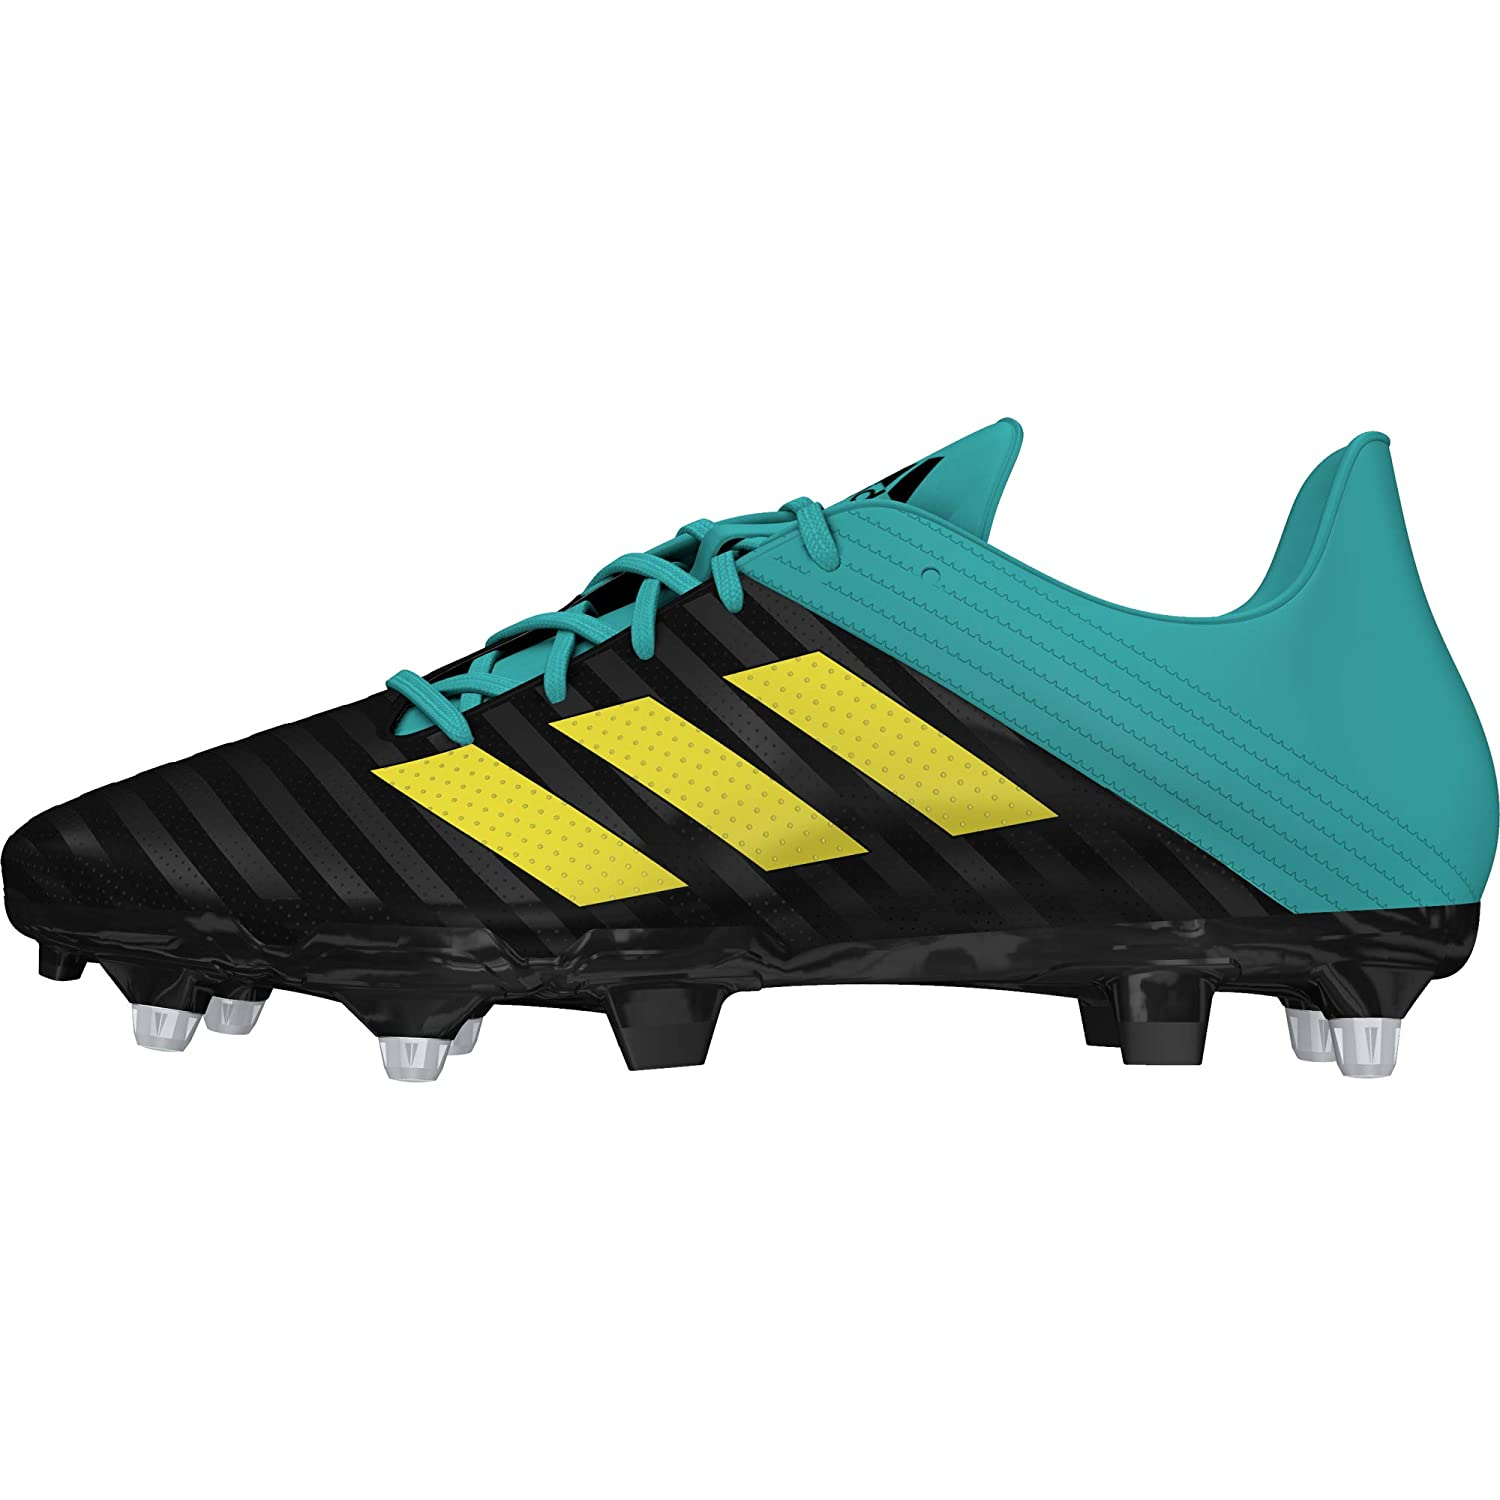 2761215fa53 Amazon.com  adidas Malice Adult s Rugby Boots SG  Clothing